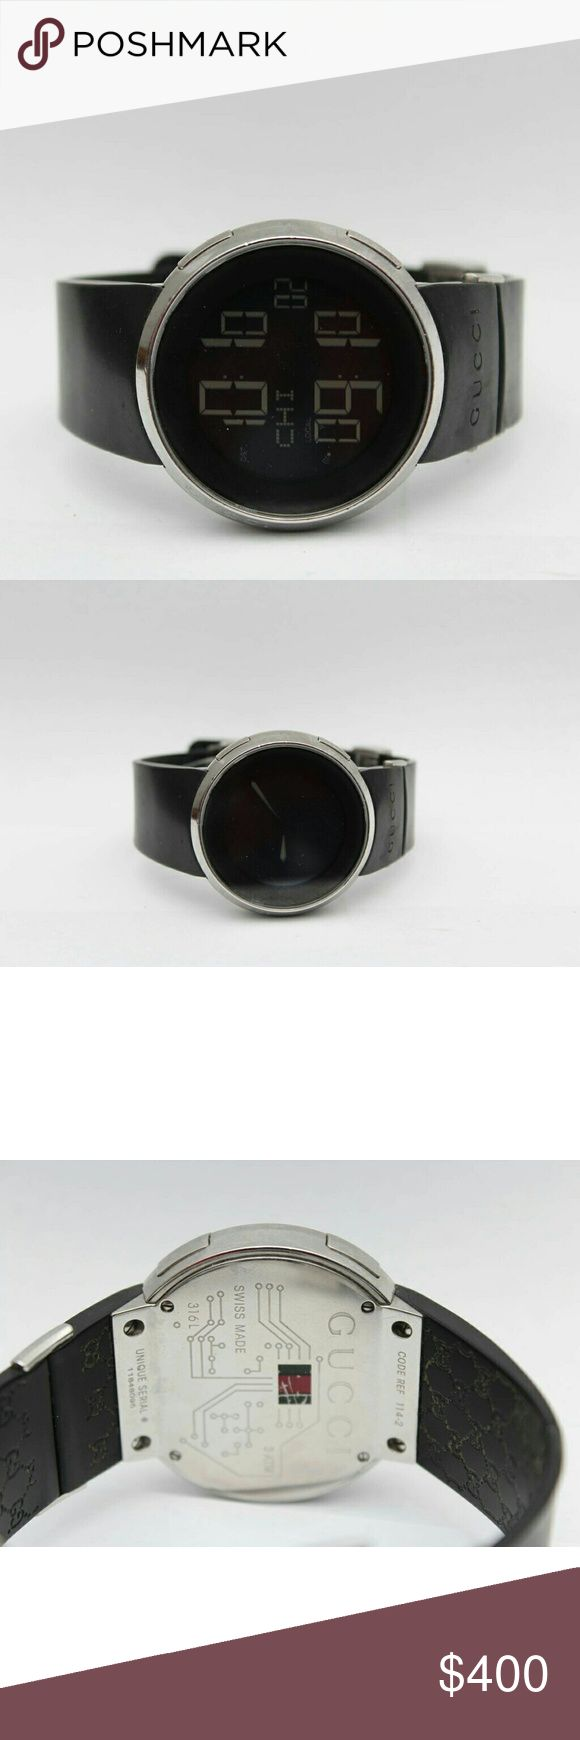 Gucci Women's Black Rubber Strap Digital Watch Case: Stainless steel  Dial: Black digital  Calender Digital dual time displays Strap: black rubber Clasp: deployment  Movement: quartz  Water resistance  Control of origin: Switzerland  Serial #: 11848095 Gucci Accessories Watches